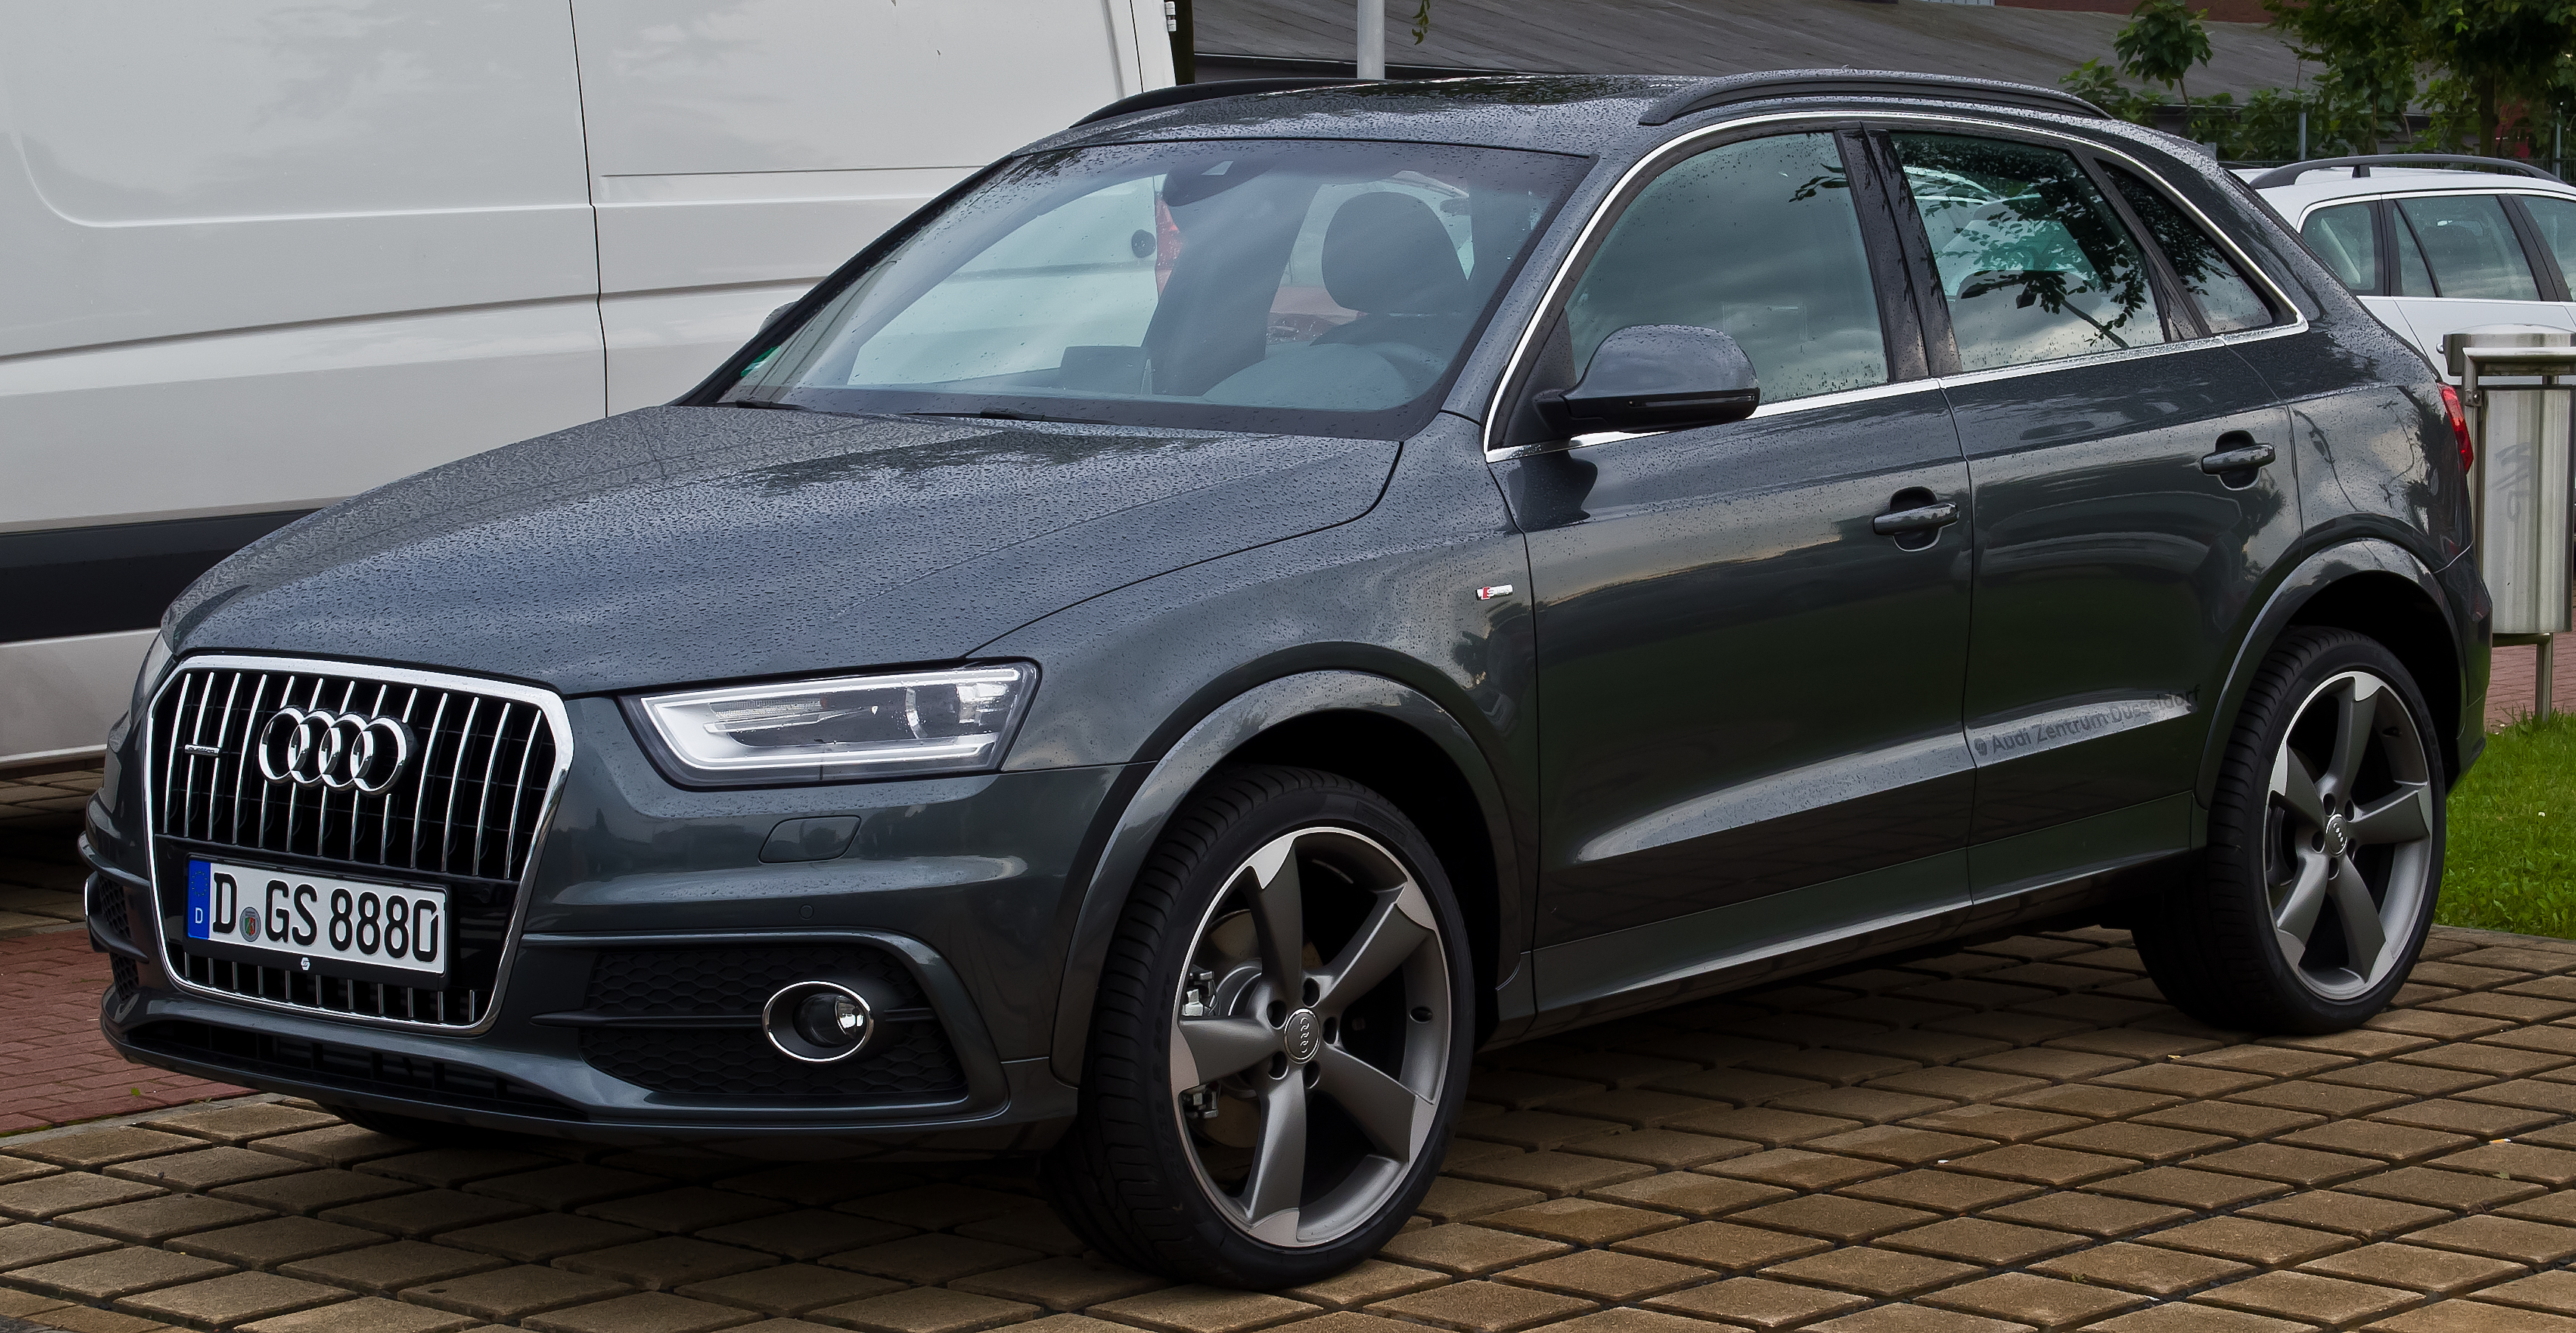 file audi q3 2 0 tdi quattro s line frontansicht 24 august 2014 d wikimedia. Black Bedroom Furniture Sets. Home Design Ideas